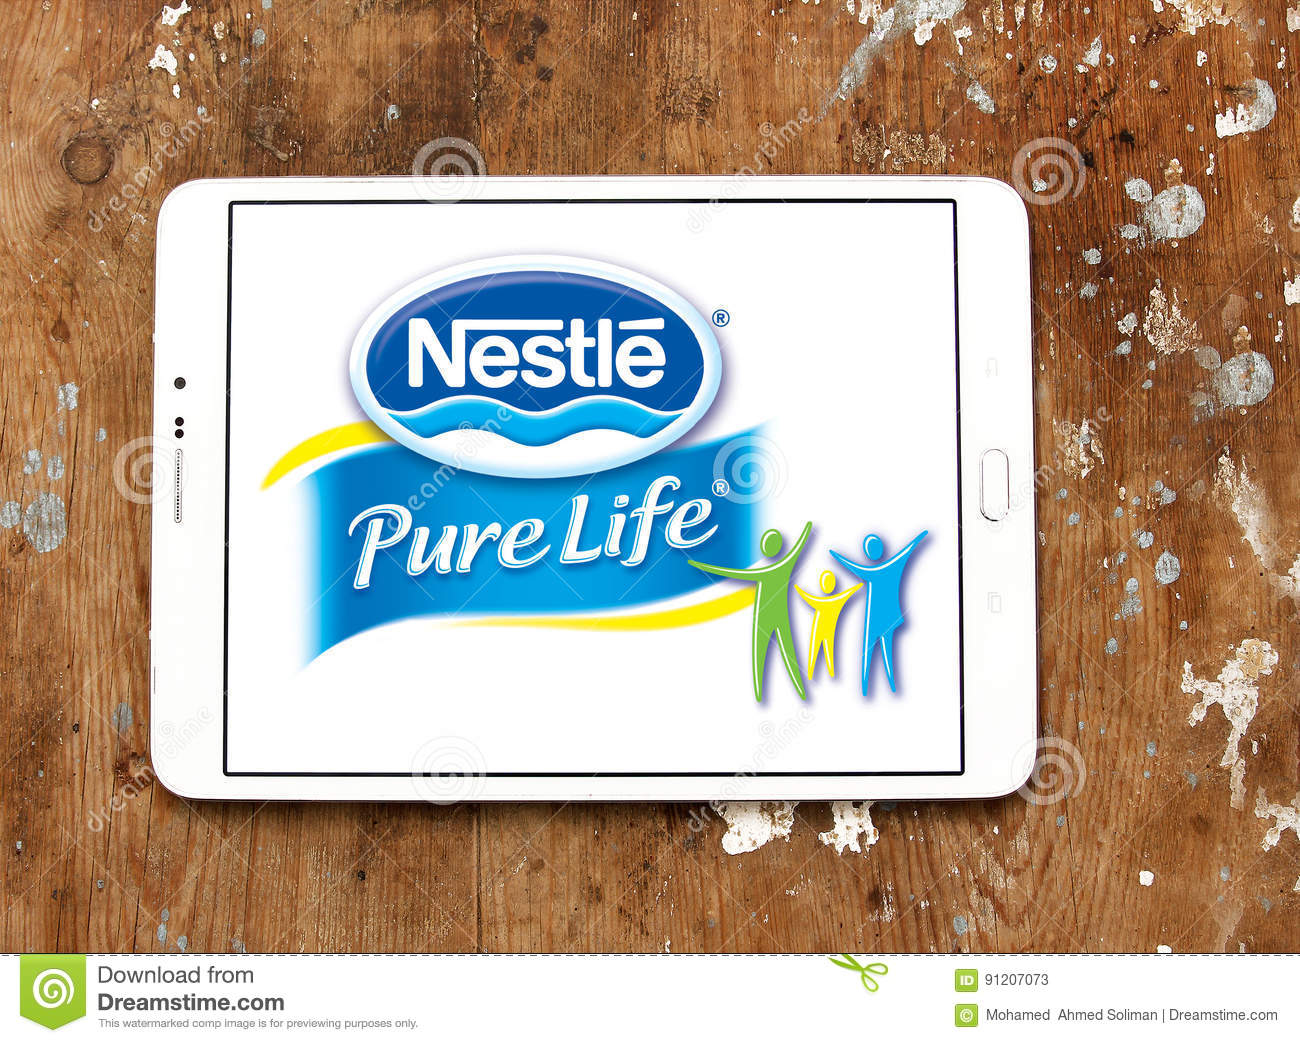 Nestle pure life logo editorial stock photo  Image of perrier - 91207073